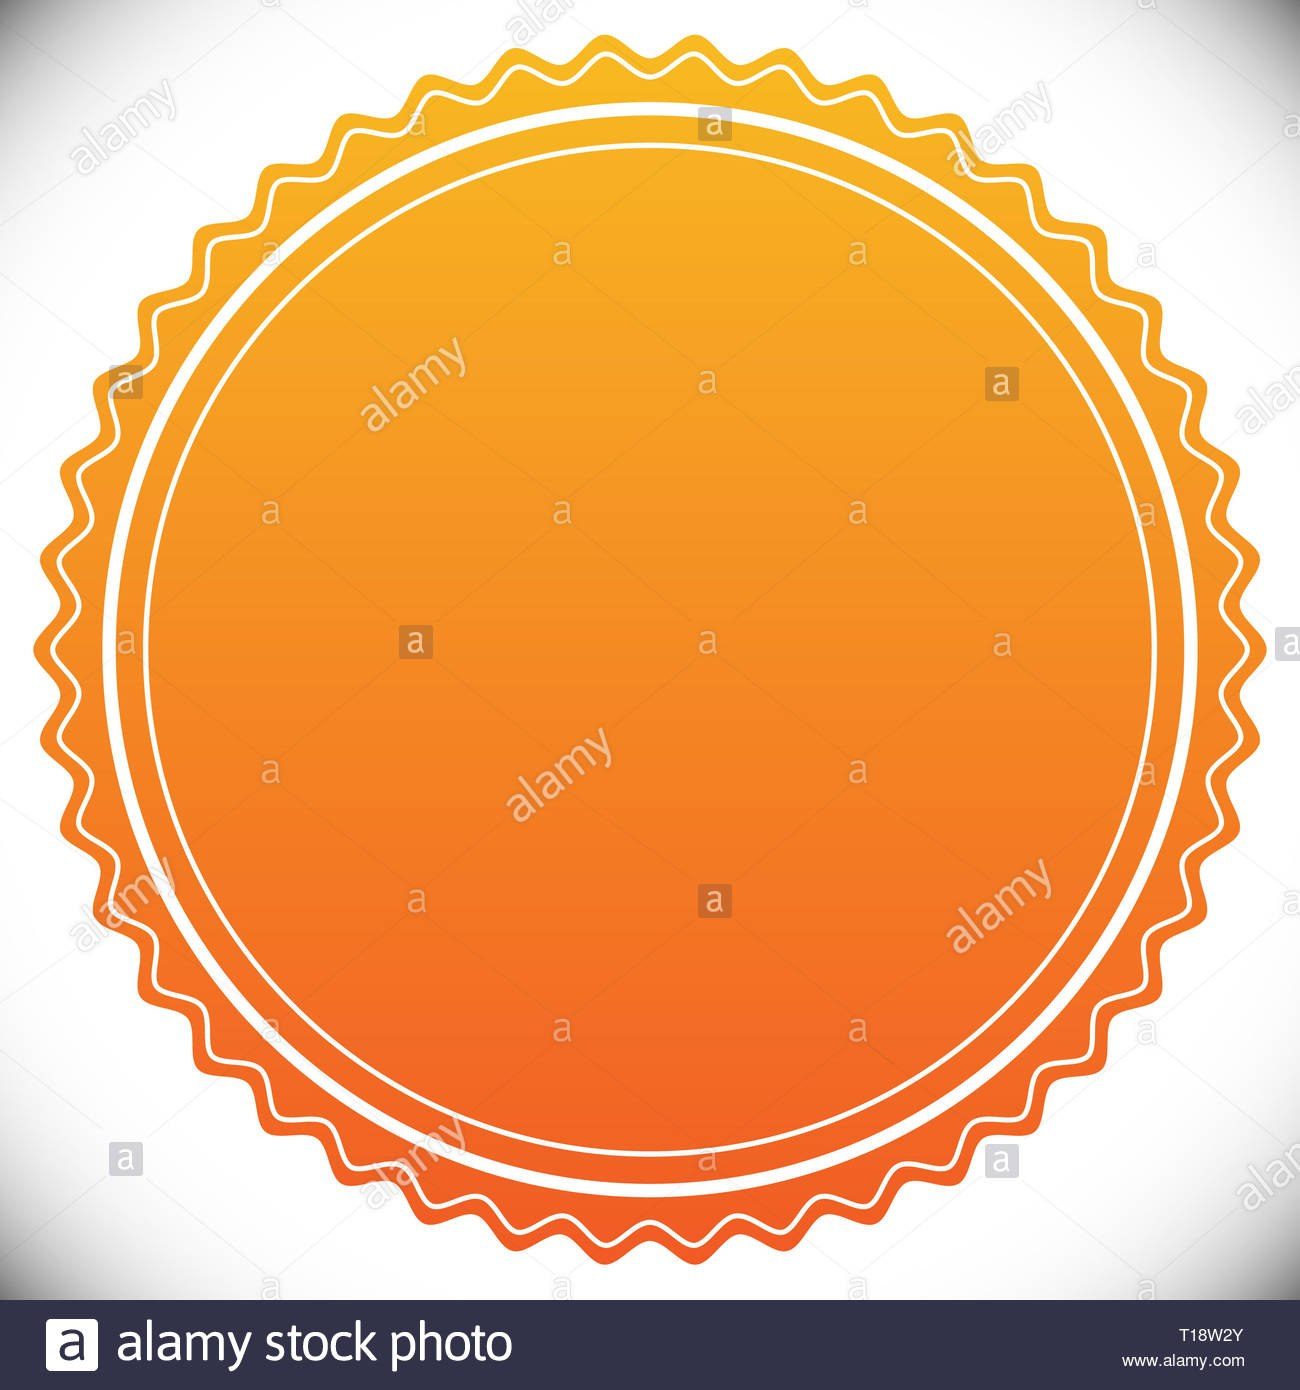 Blank Empty Stamp Seal Or Badge Template Stock Photo   Alamy Throughout Blank Seal Template